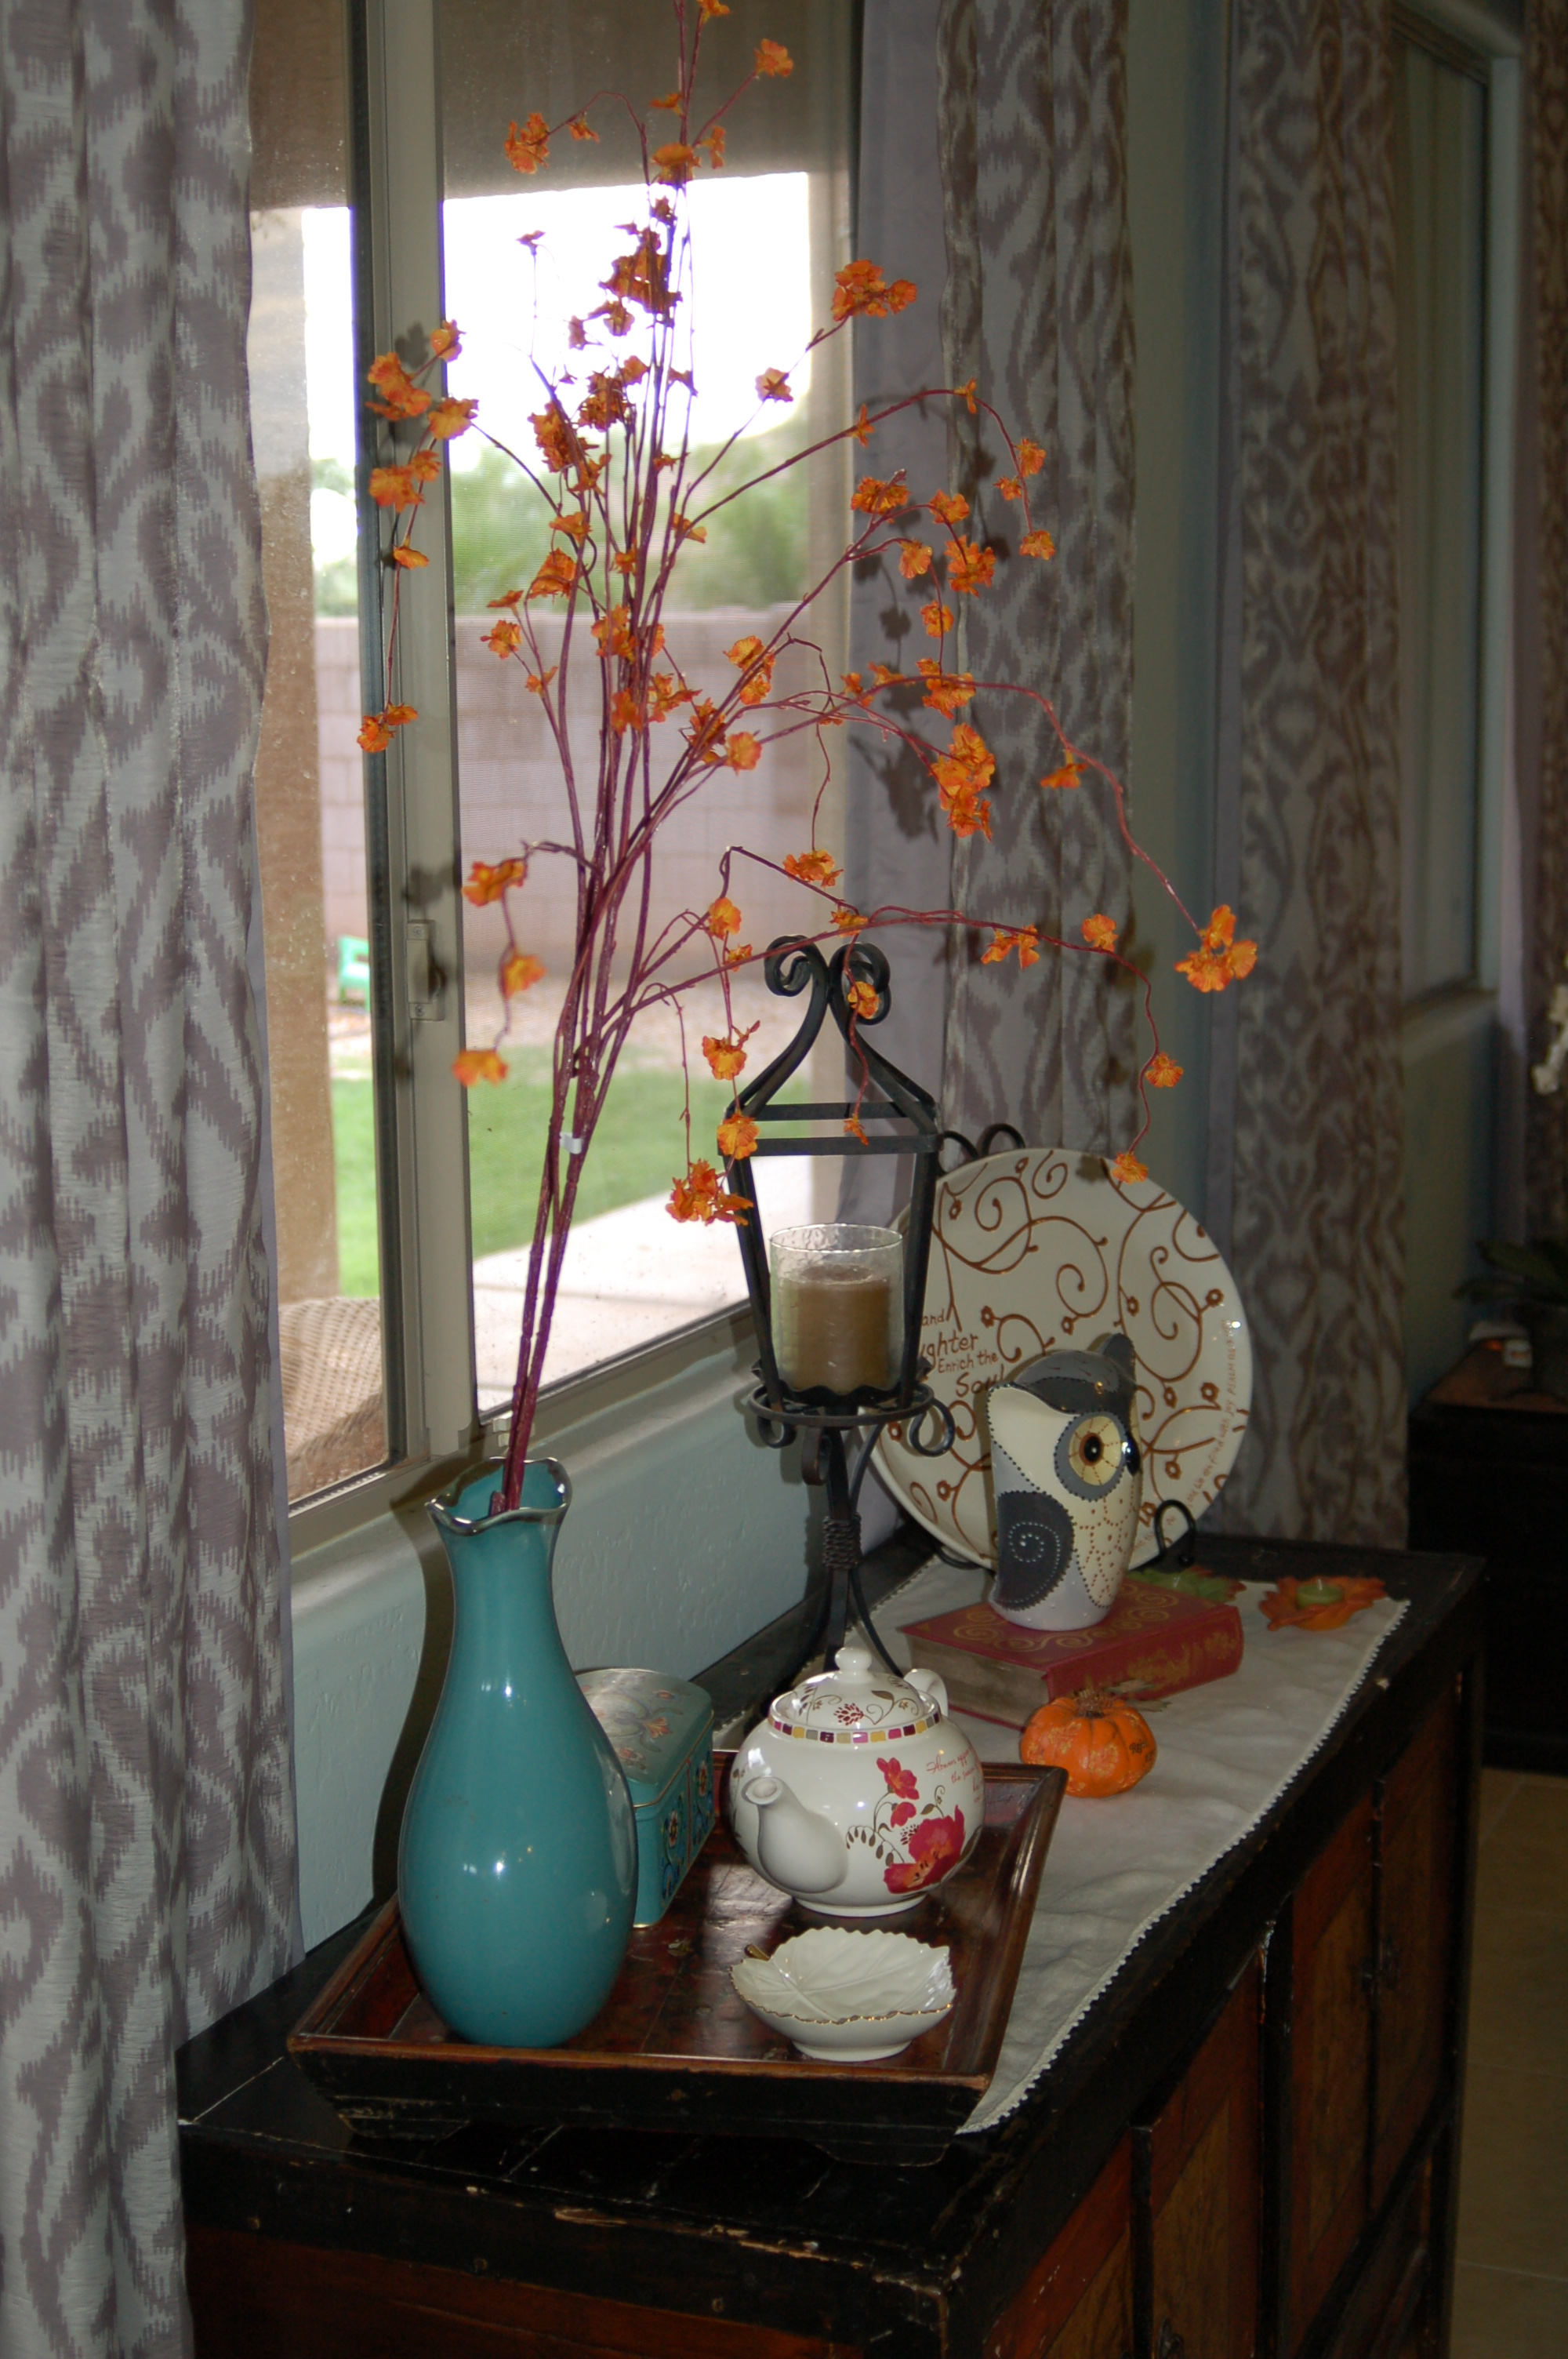 fantabulous women tabitha dumas fall open house sideboard branch orange